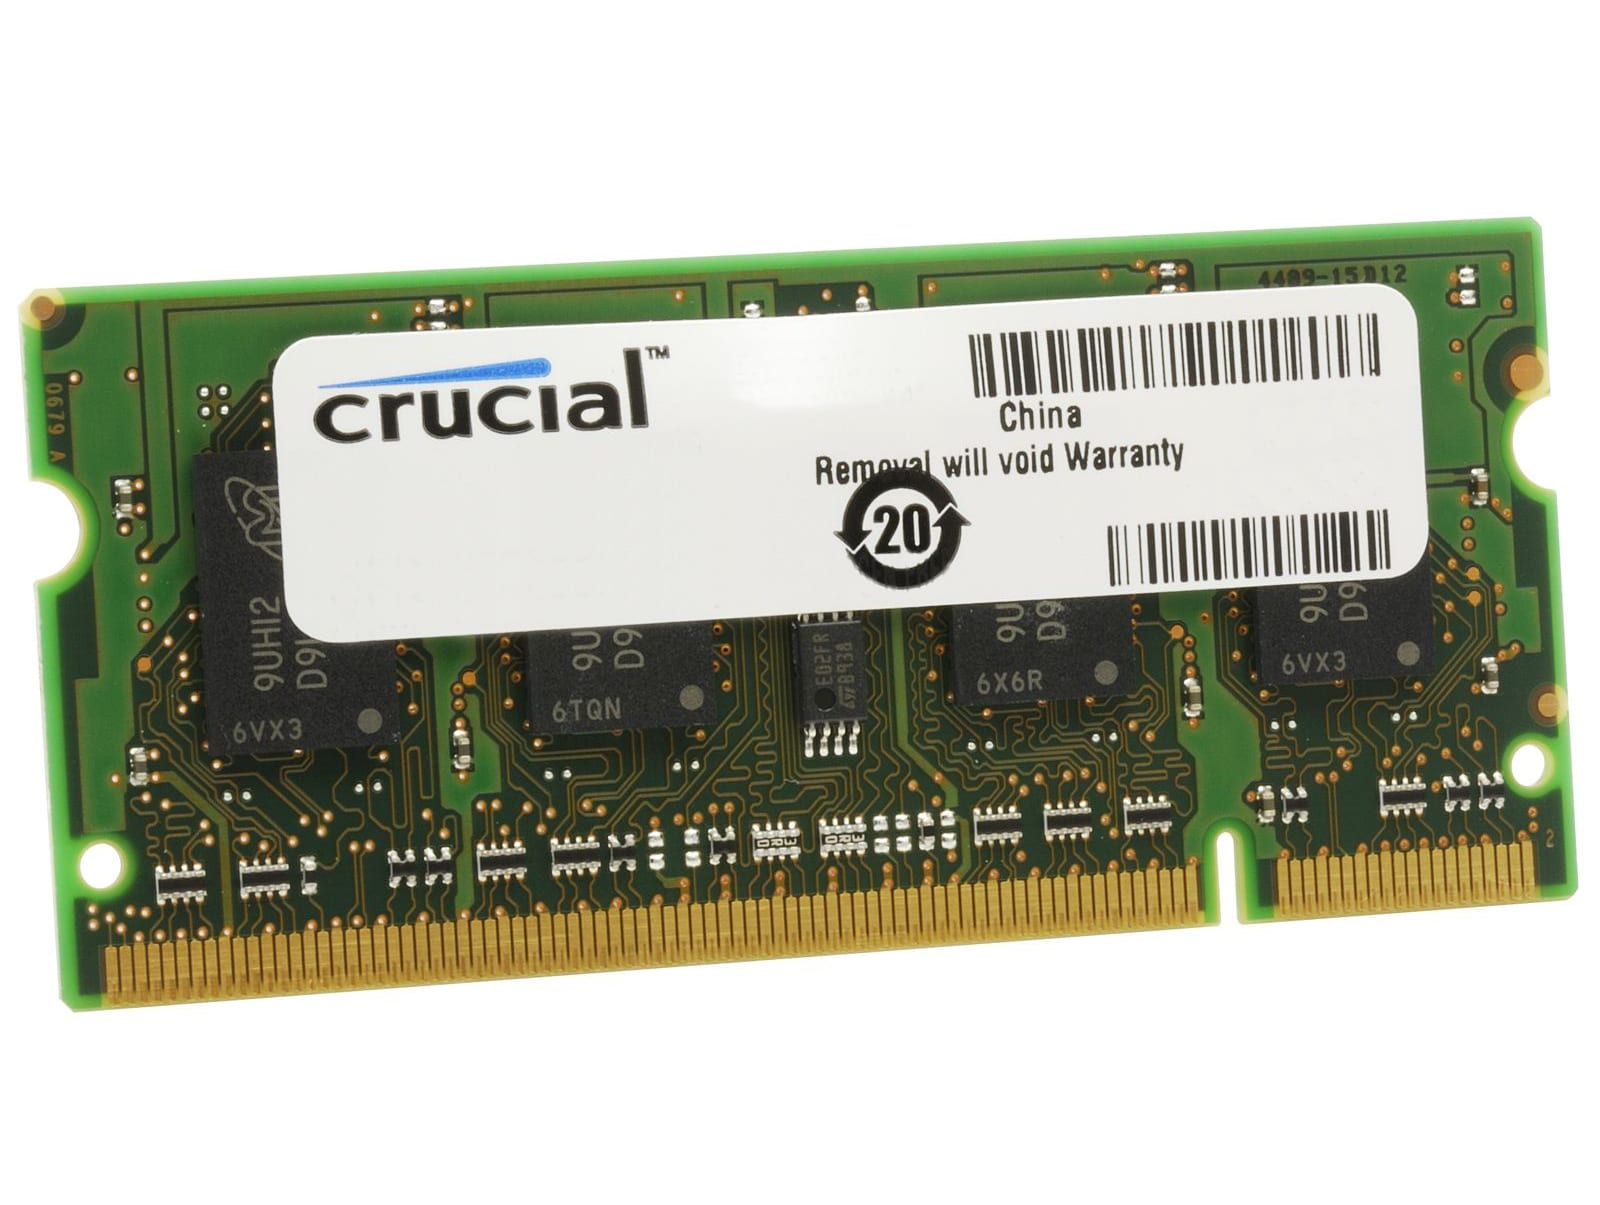 Crucial 8GB 1866MHZ DDR3 SO-DIMM Memory